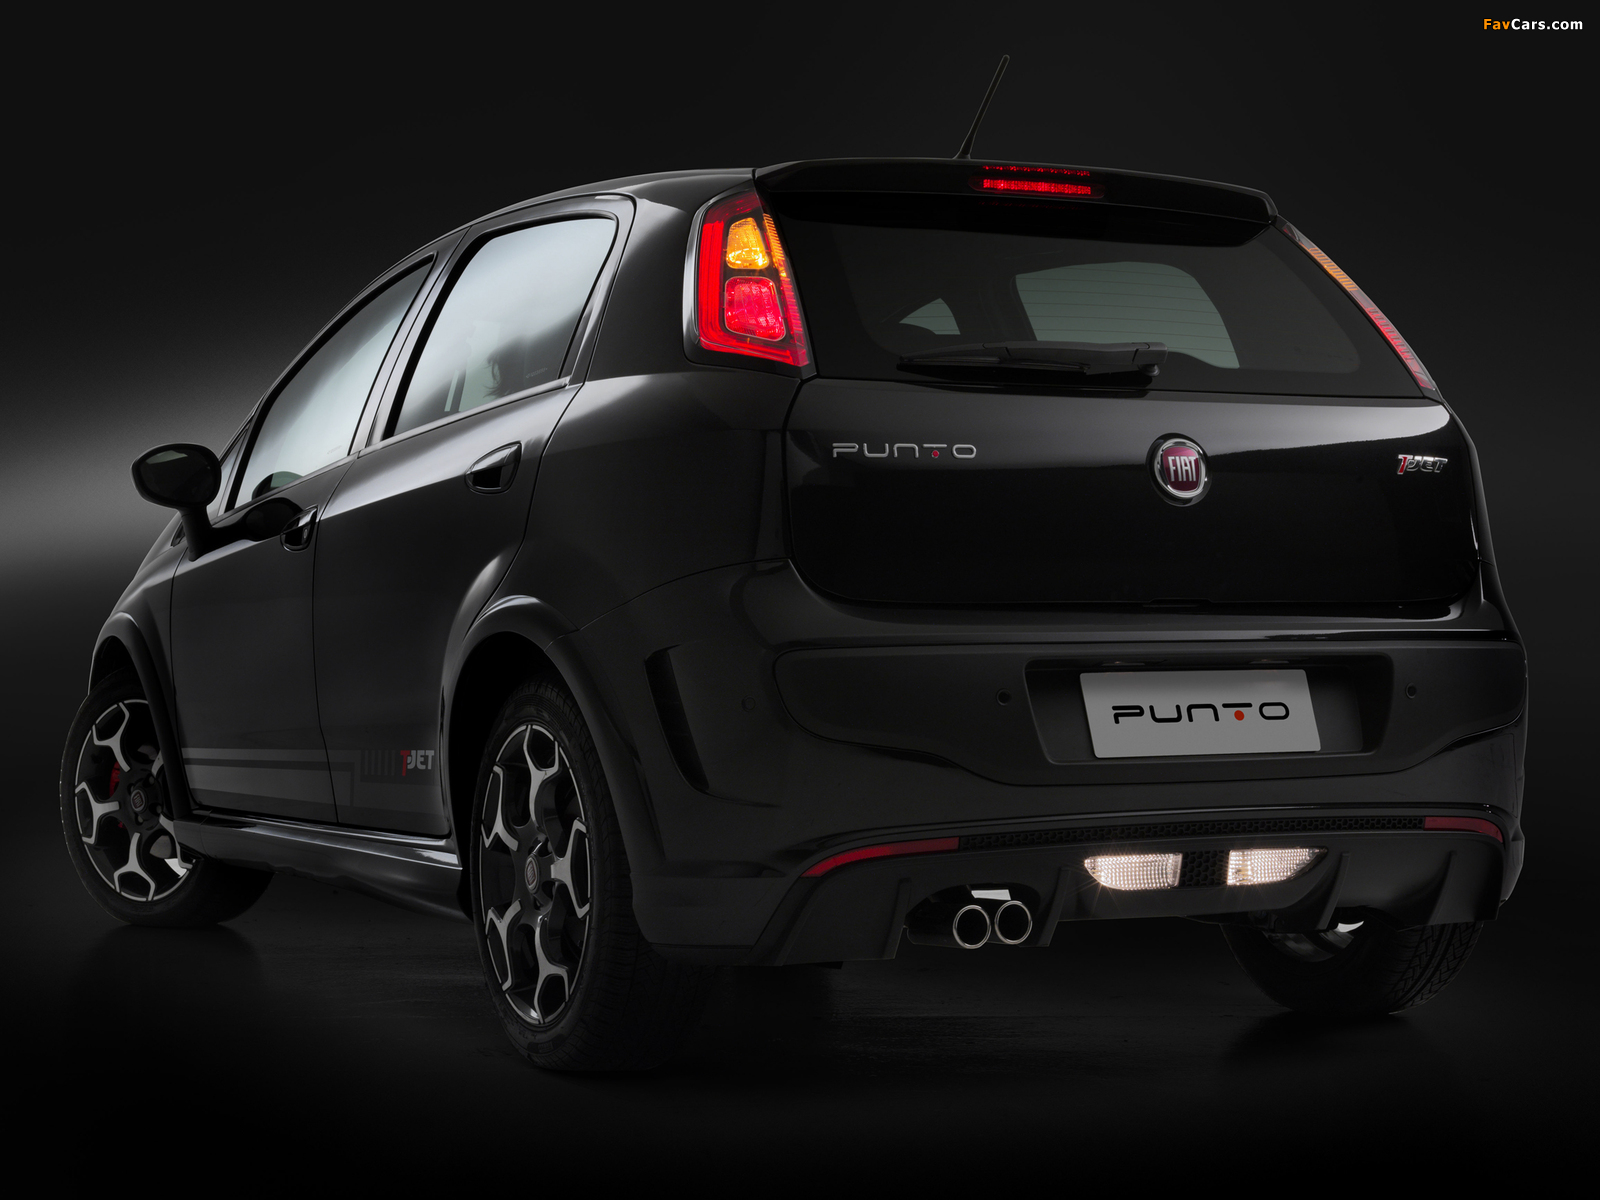 Fiat Punto T Jet Br Spec 310 2012 Wallpapers 1600x1200